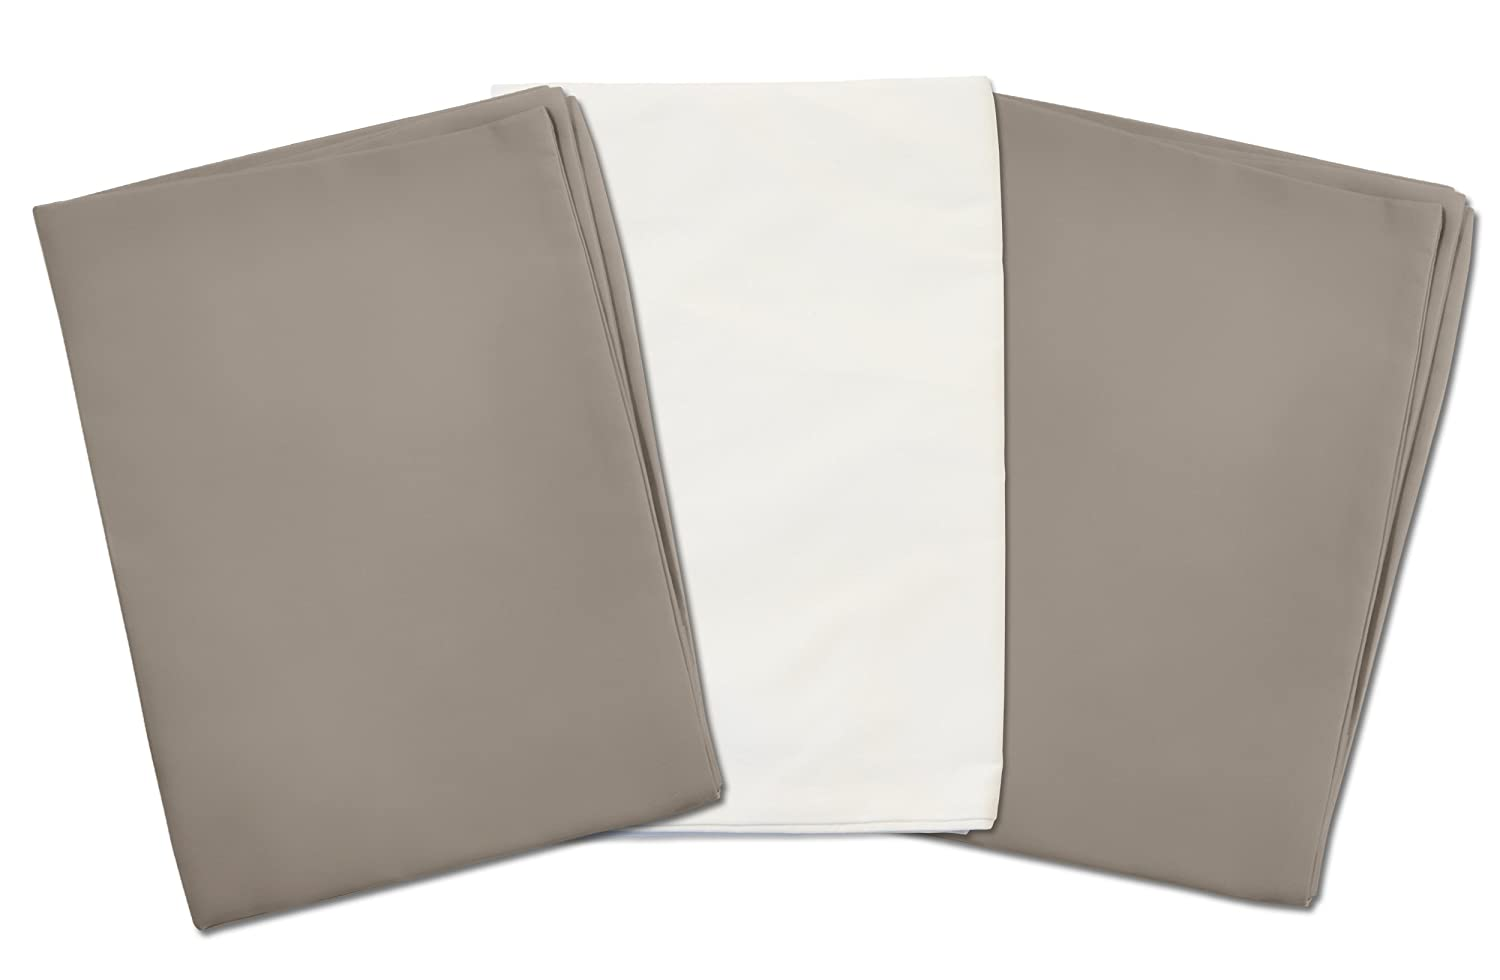 2 White Toddler Pillowcases Zadisonjaxx Basics Collection Machine Washable 2 Pack Envelope Style Closure For Pillows Sized 13x18 and 14x19-100/% Cotton With Percale Weave